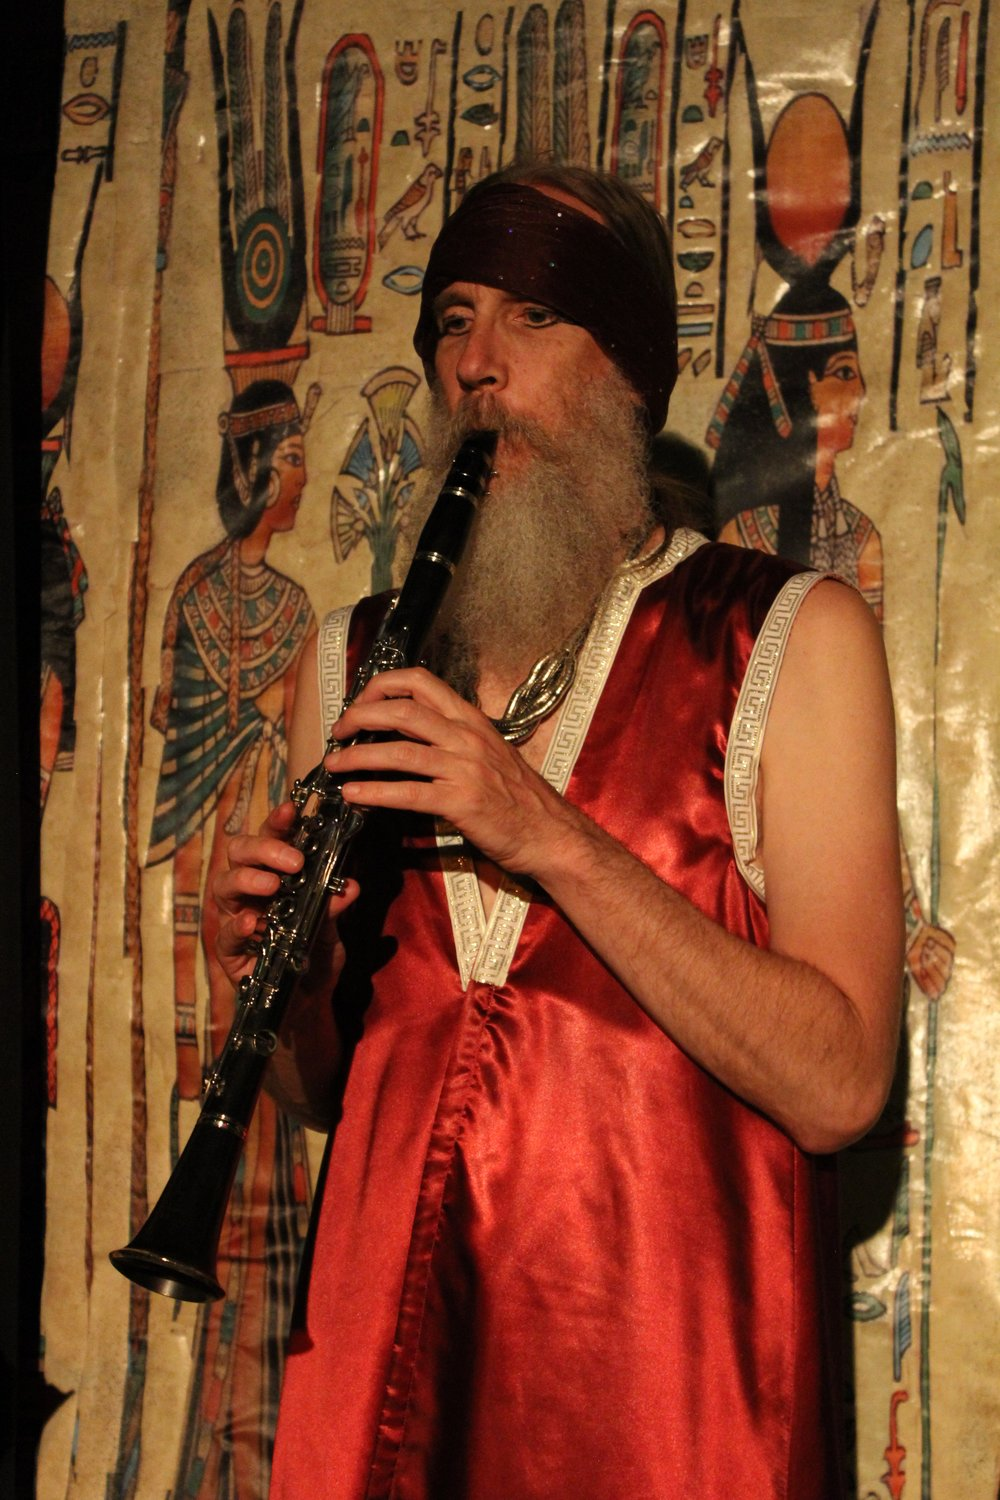 jochanaan  as The Musician